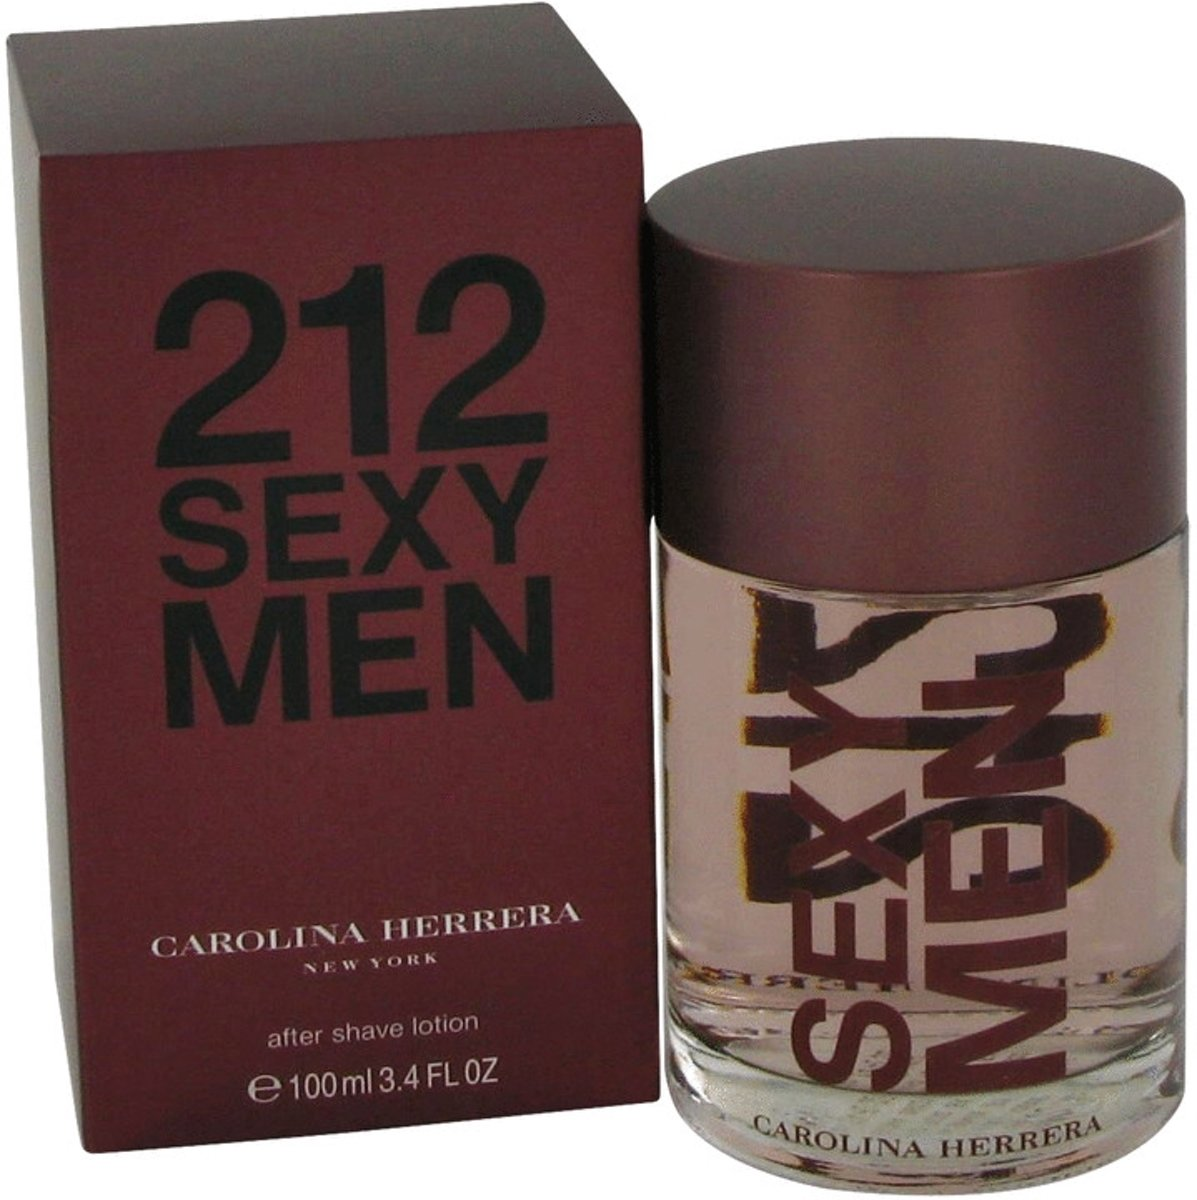 Carolina Herrera 212 Sexy 100 ml - After Shave Men